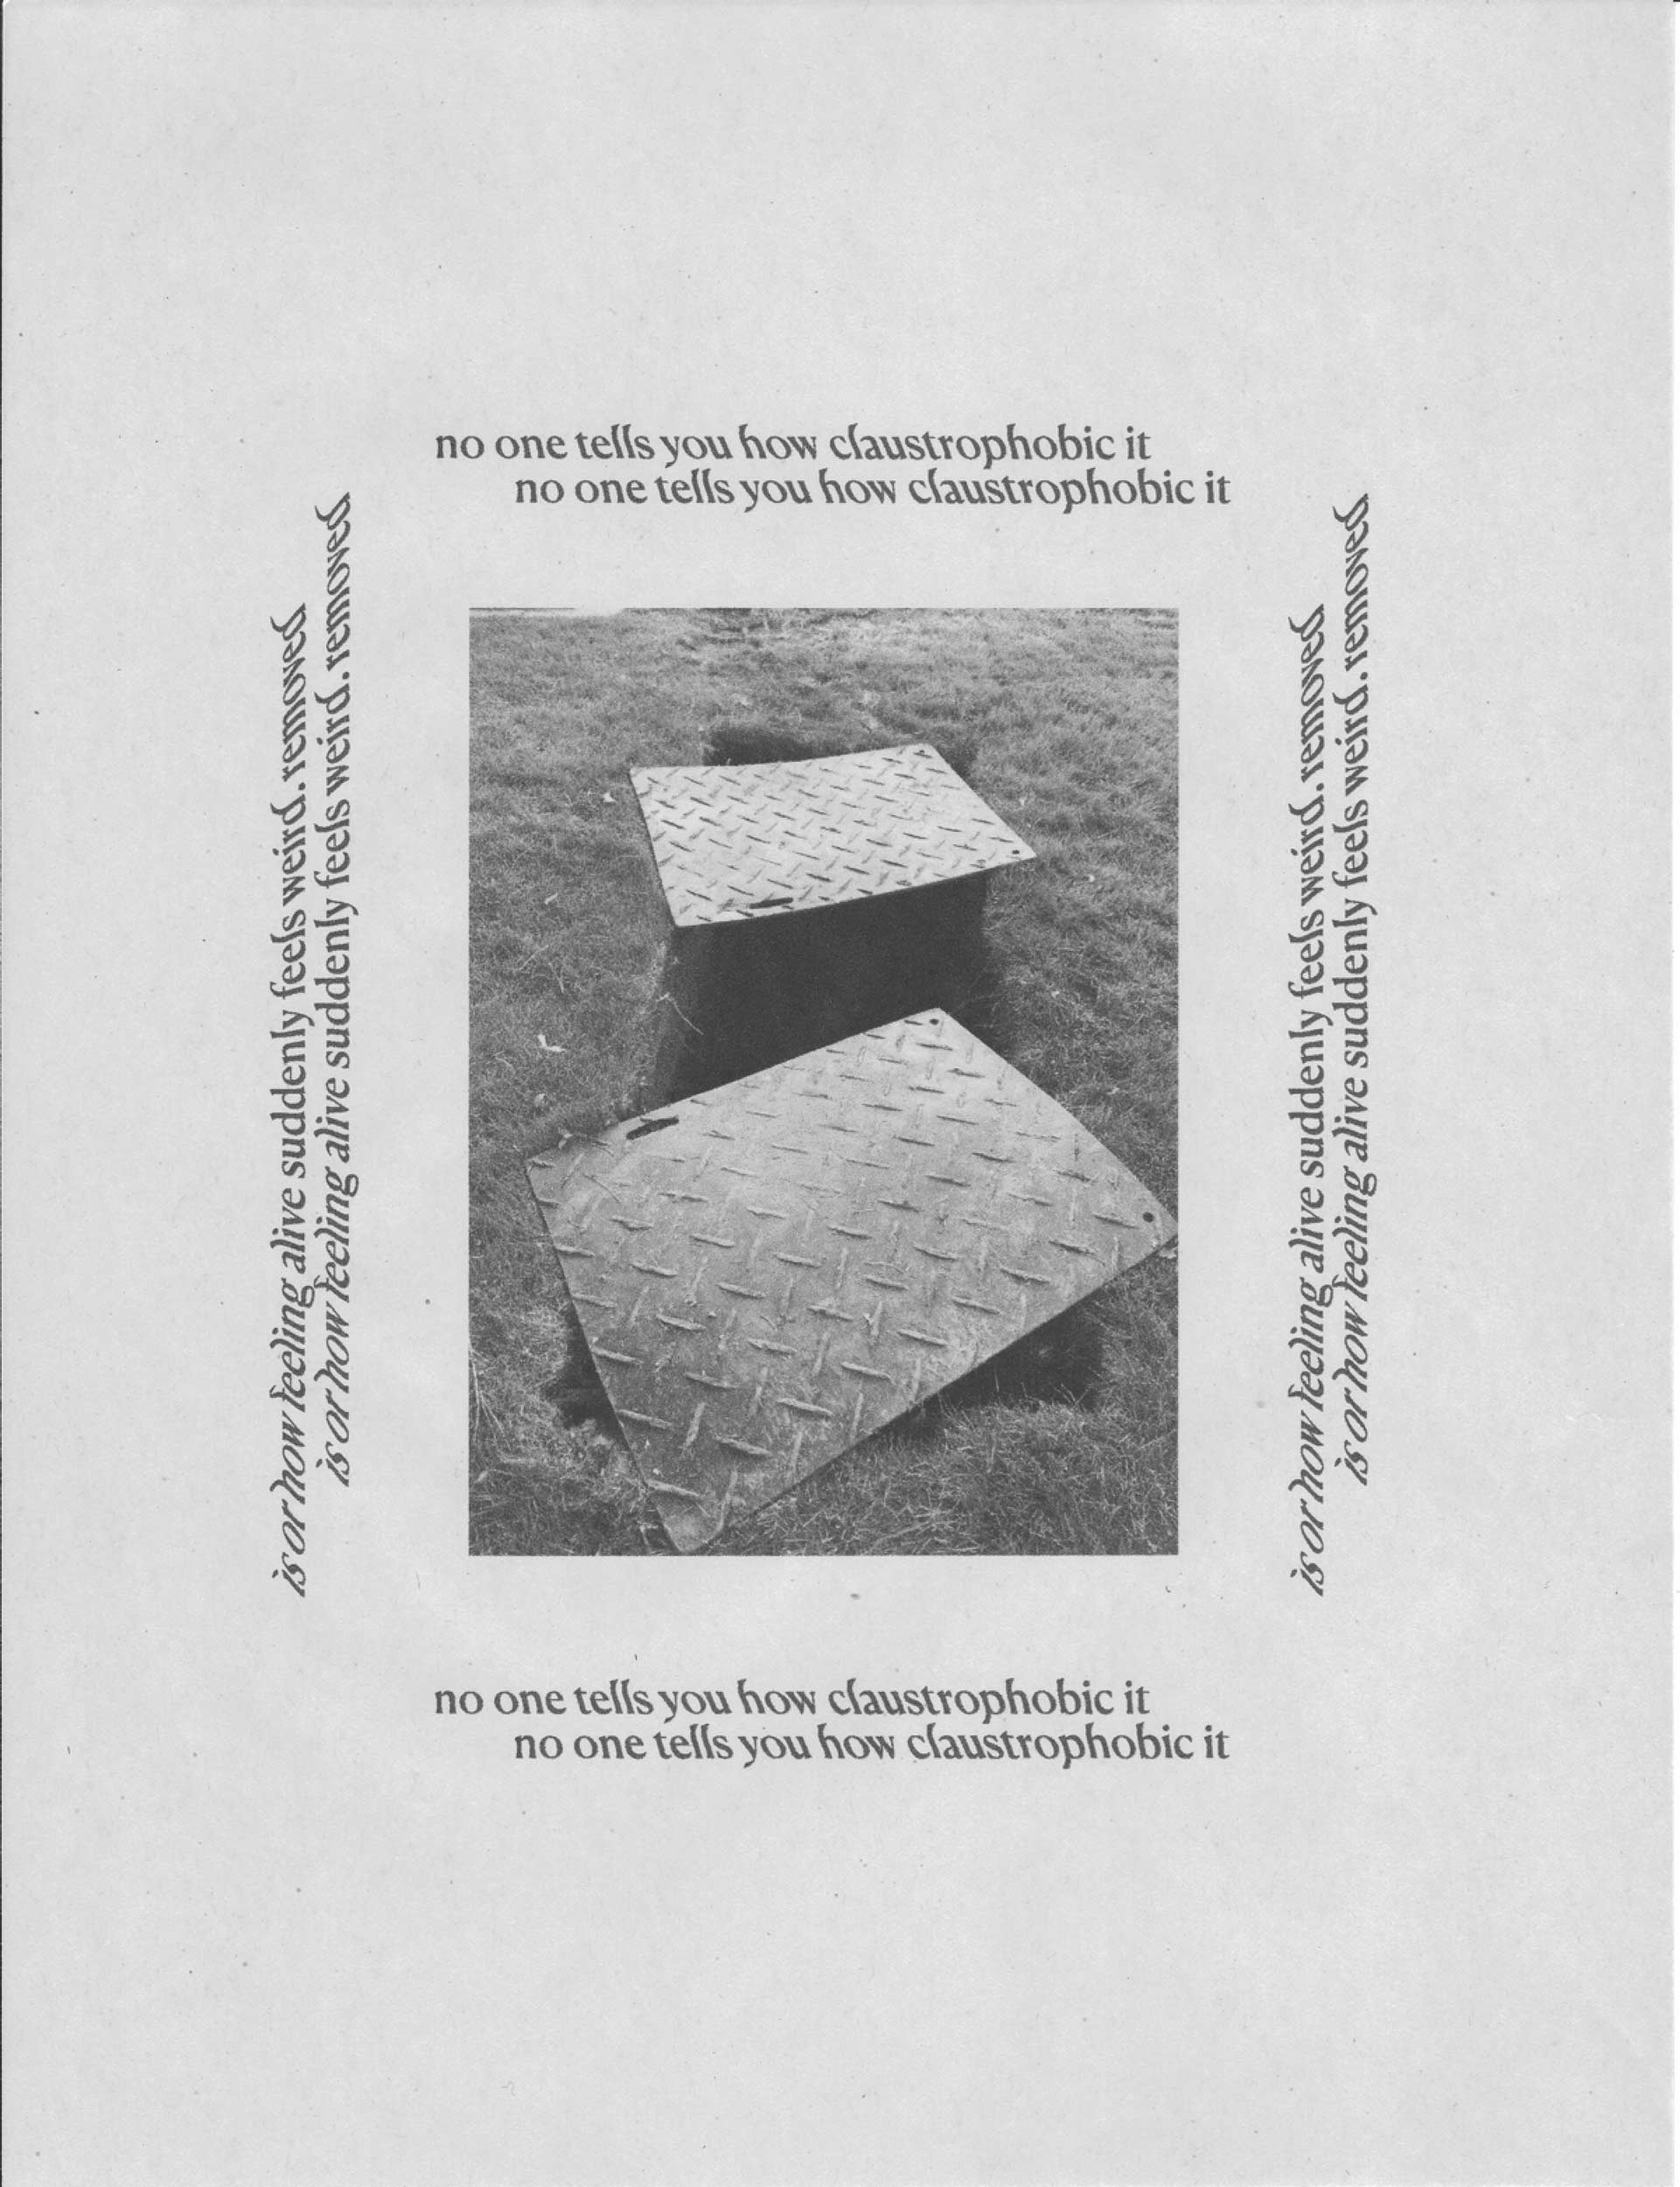 """A black and white printed image and text on newsprint paper. The image of two diamond-stamped metal pieces laying haphazardly over a deep rectangular hole in ground is centered in the rectangular page. Eac side of the image is boarded by text. The text on the top reads """"no one tells you how claustrophobic it"""". The text on the left and right sides reads, """"is or how feeling alive feels weird, removed"""""""